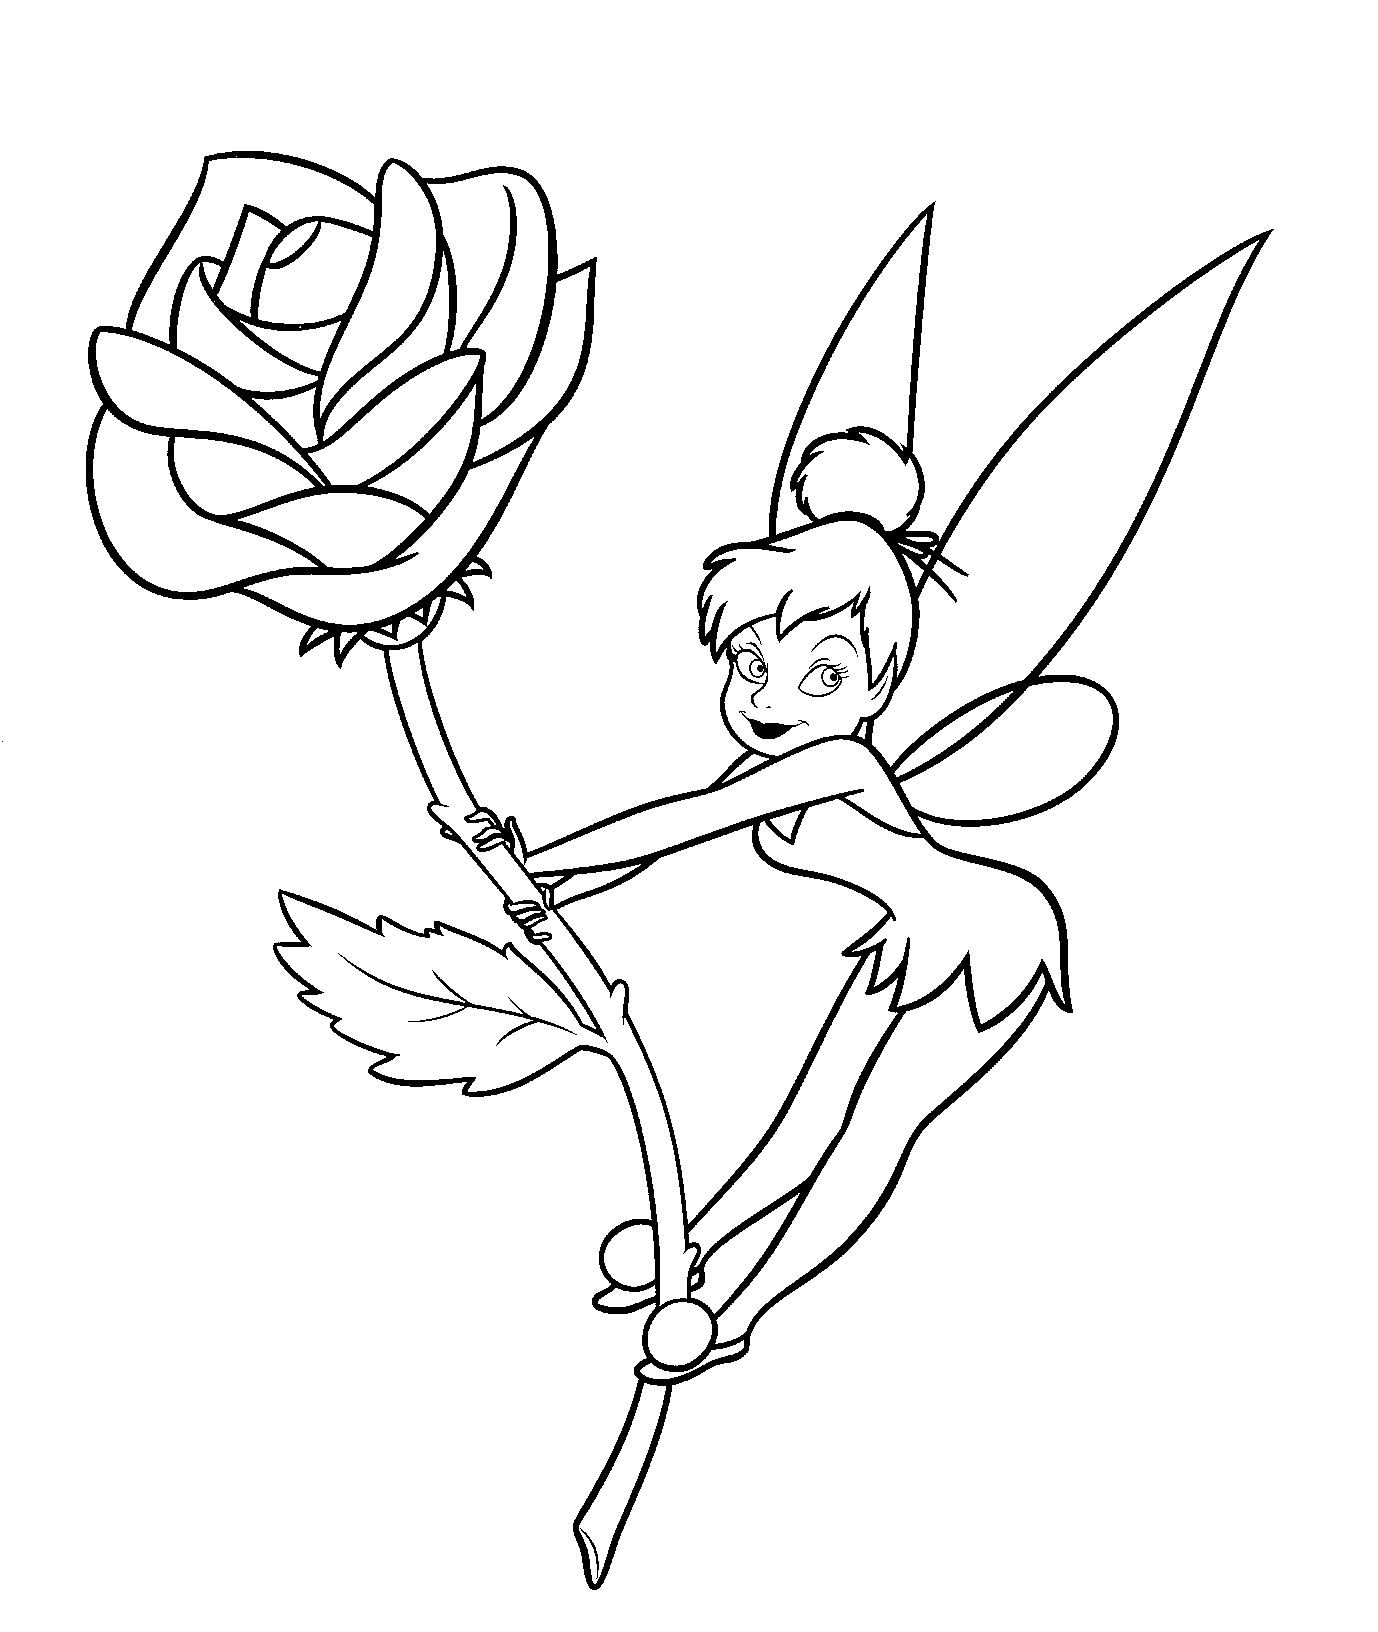 coloring tinkerbell cartoon coloring pages tinkerbell coloring pages and clip art cartoon coloring tinkerbell